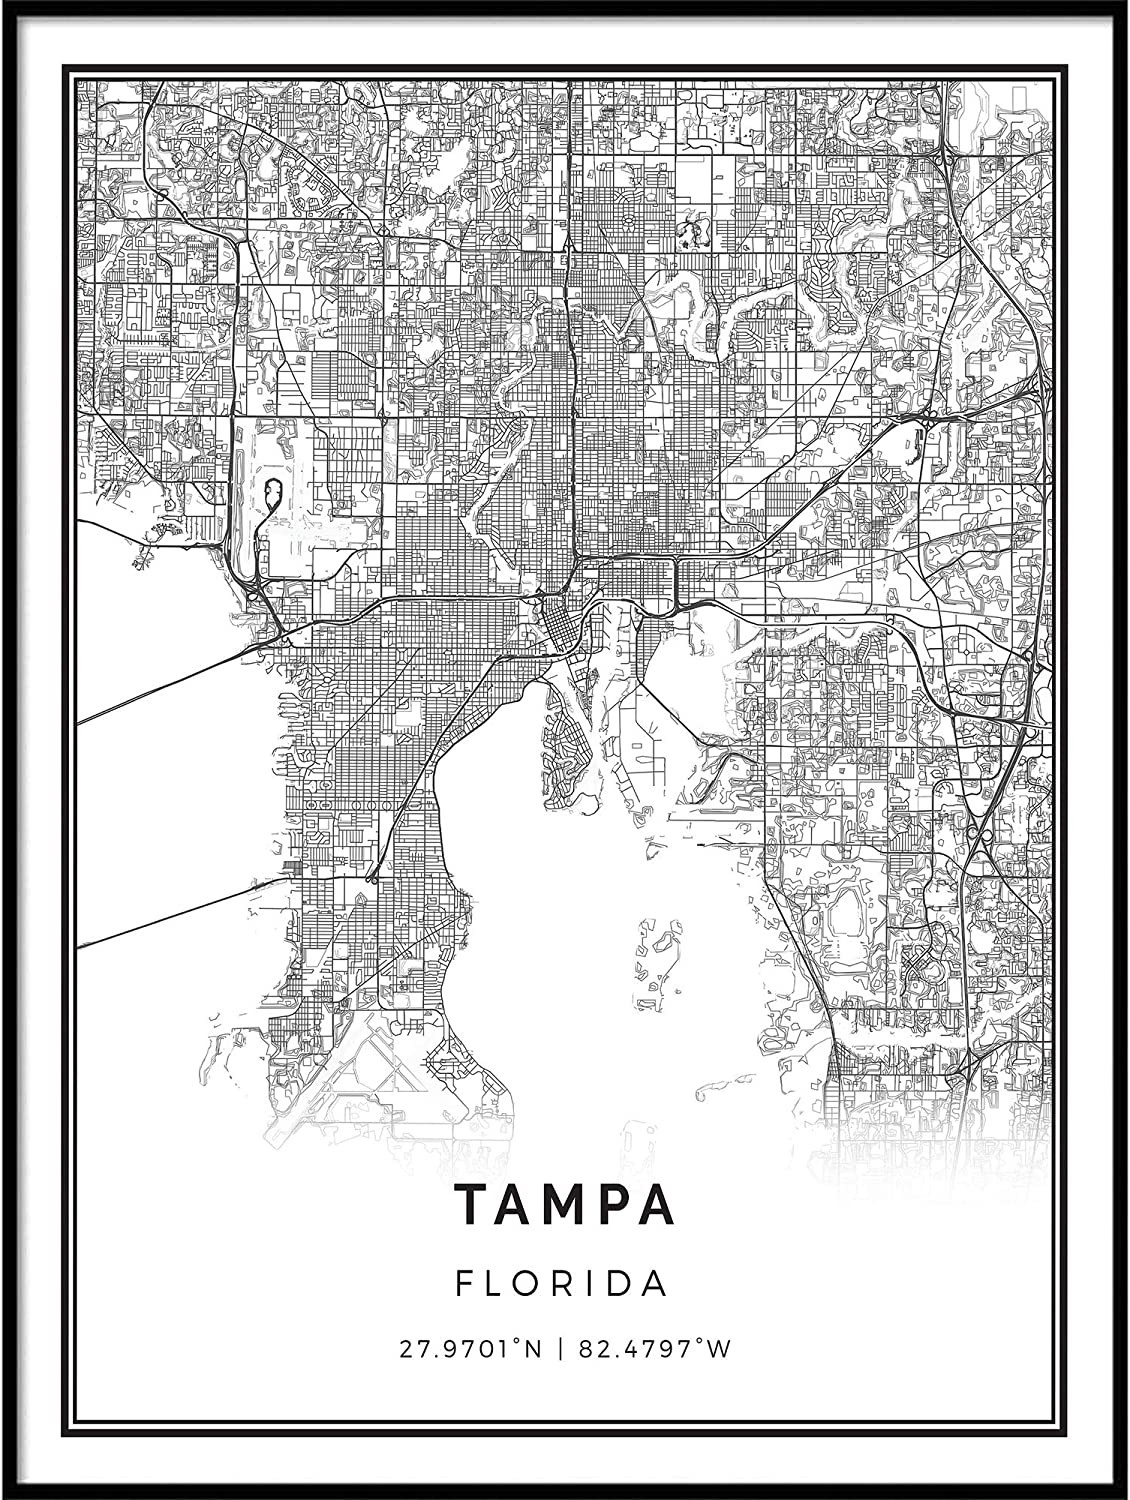 Squareious Tampa map Poster Print | Modern Black and White Wall Art | Scandinavian Home Decor | Florida City Prints Artwork | Fine Art Posters 16x20